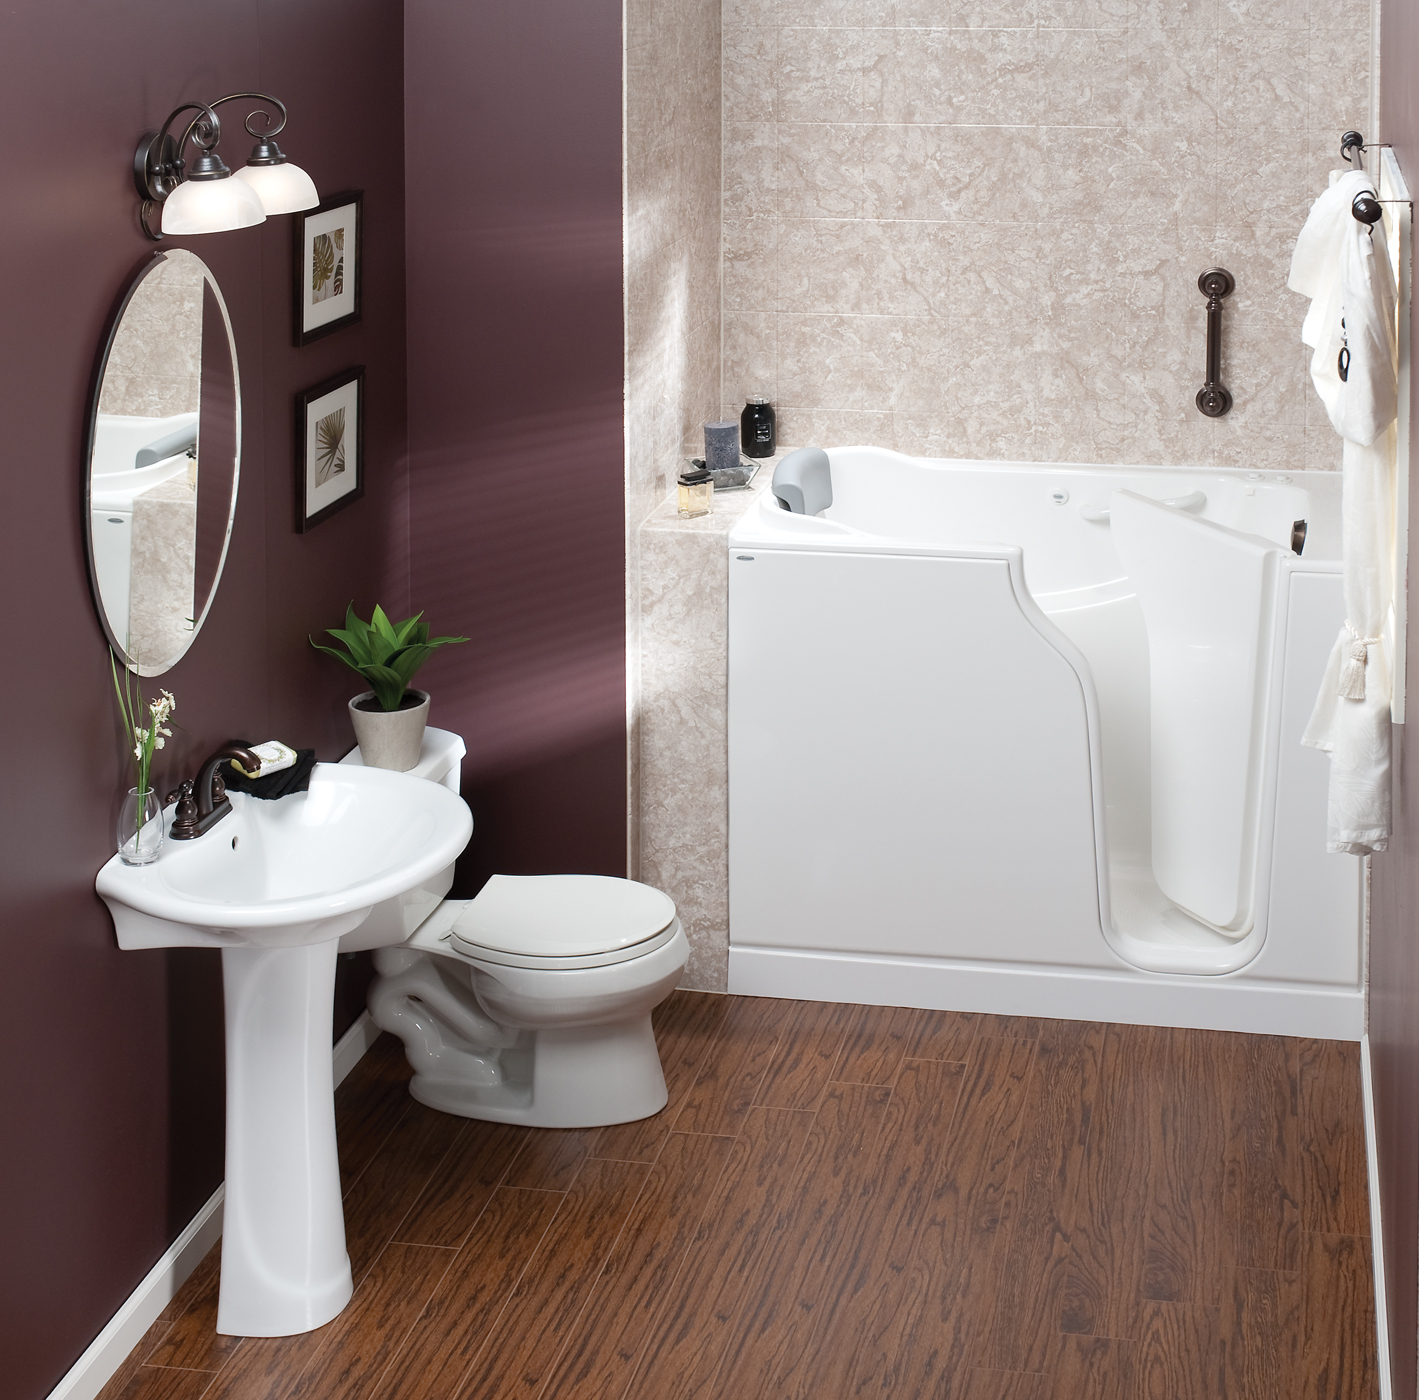 walk in tubs chicago walk in tubs for elderly chicago walk in bathtub one day bath. Black Bedroom Furniture Sets. Home Design Ideas